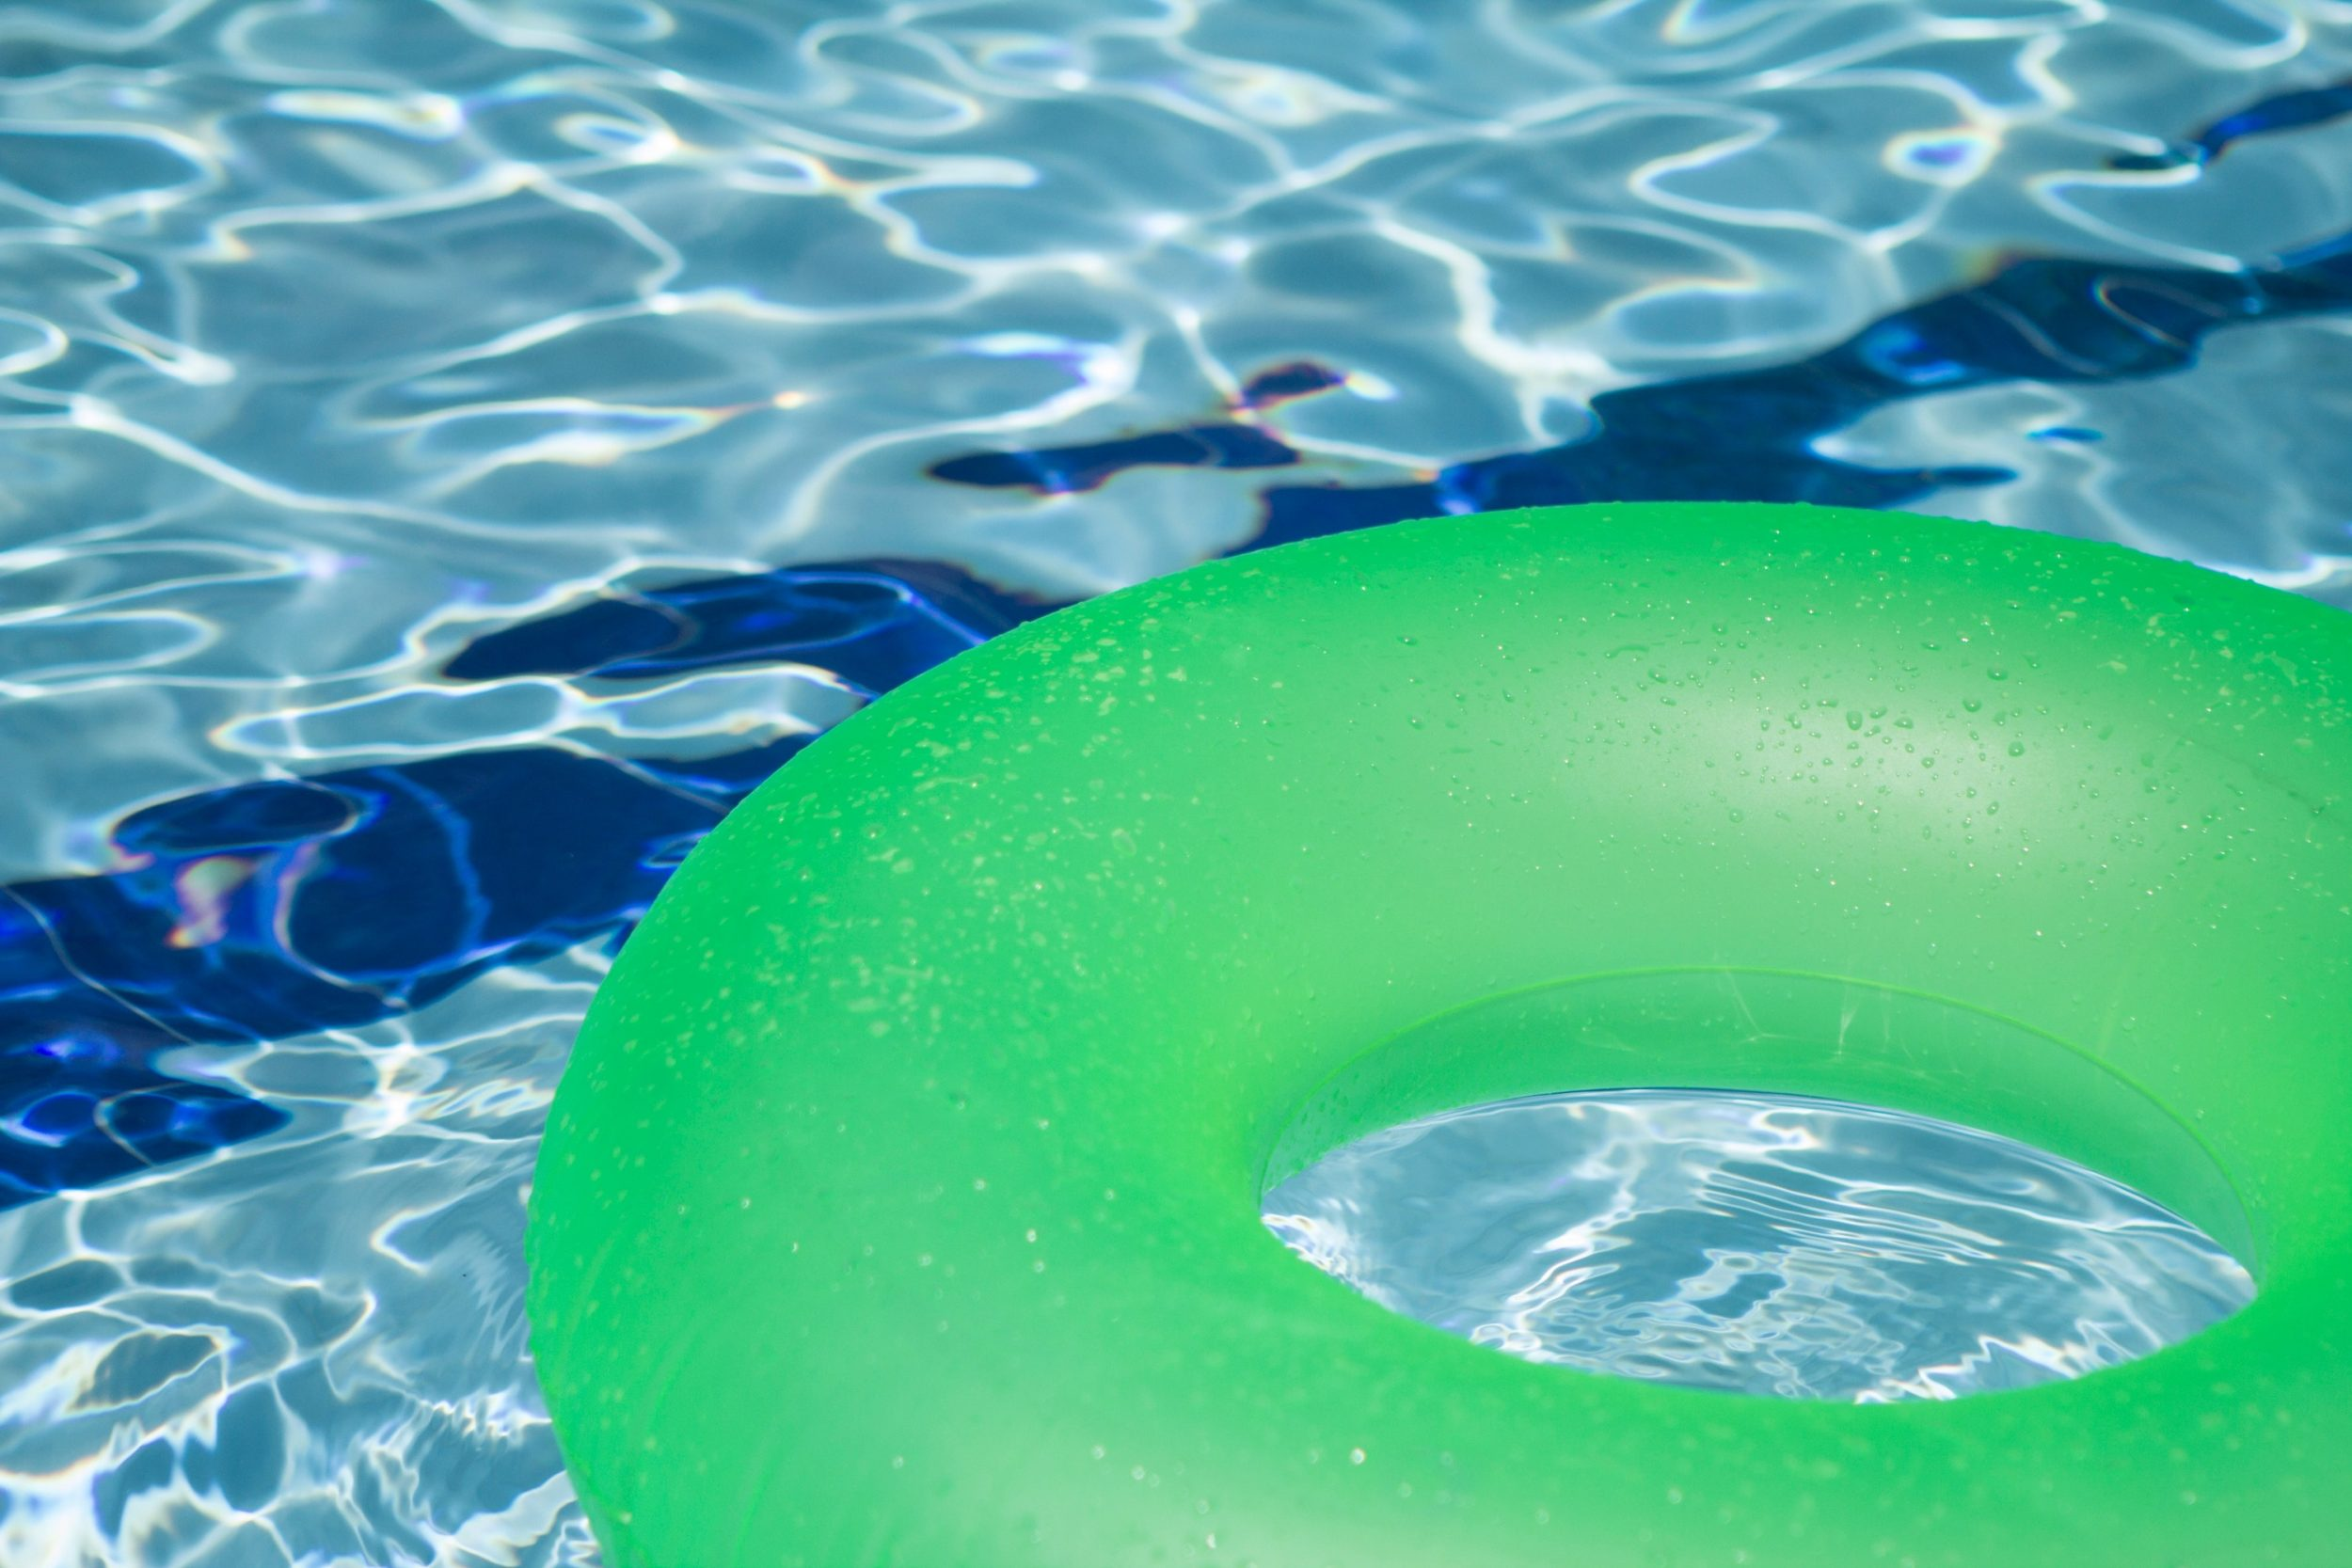 green floater on the pool